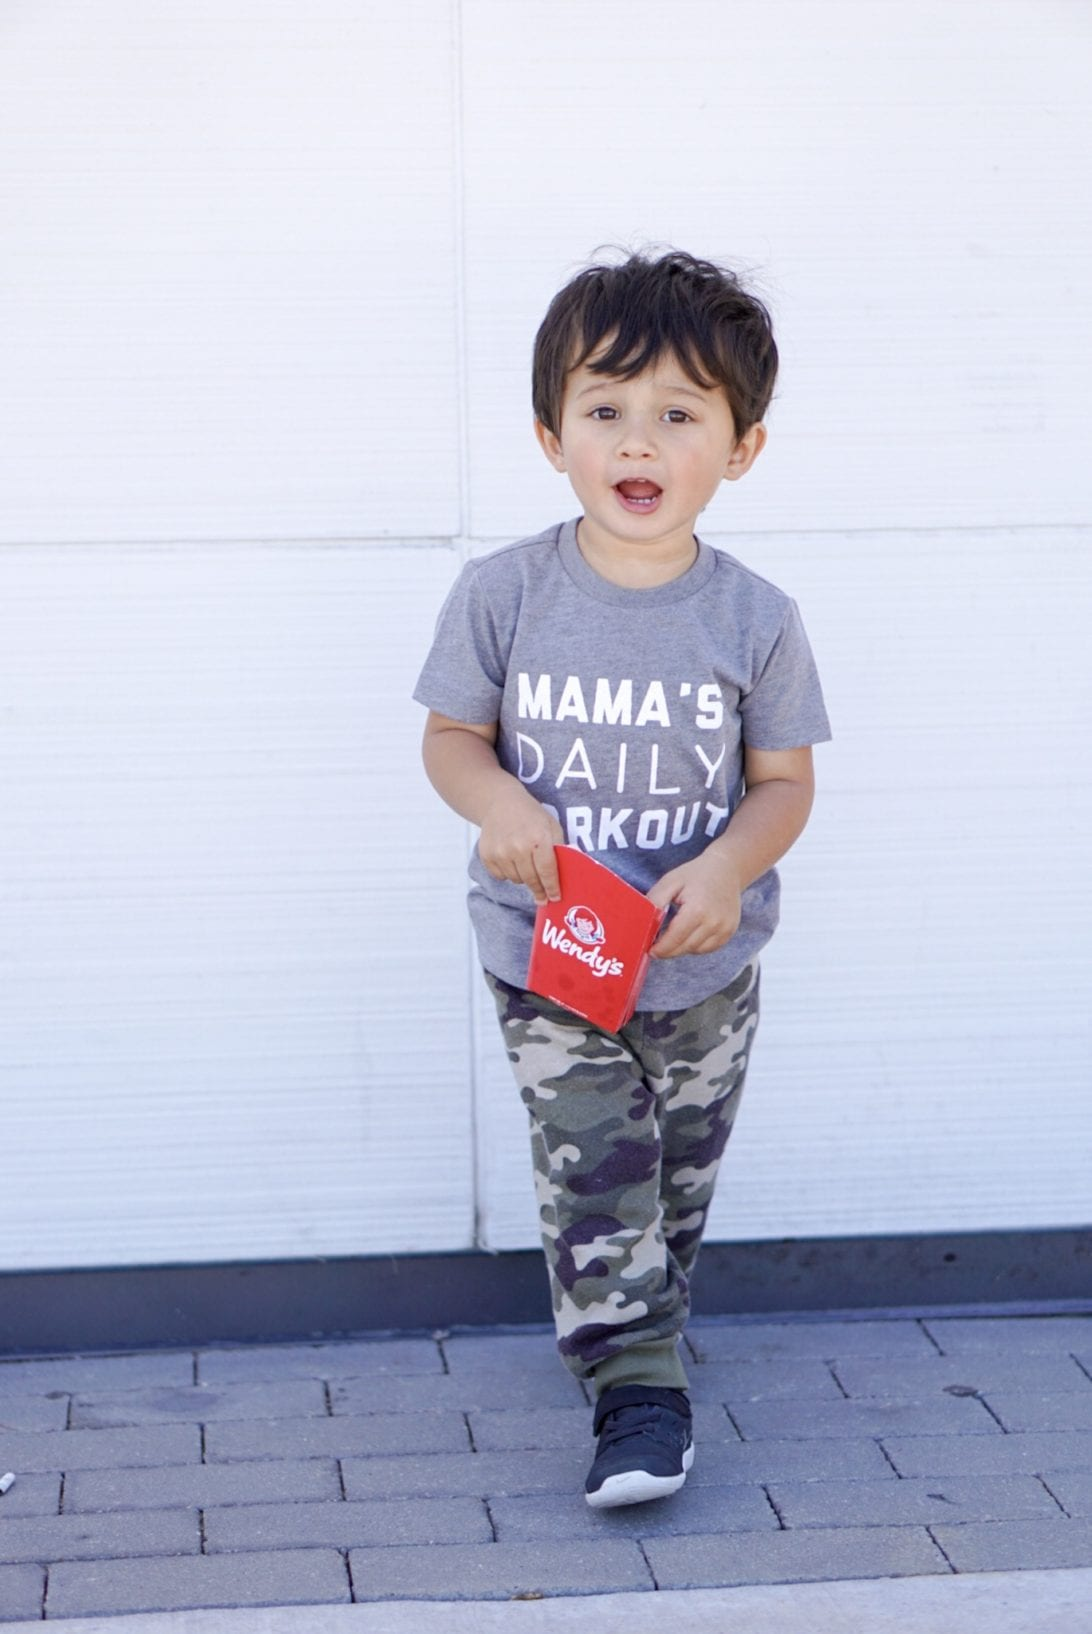 mama's daily workout, camo pants, boy outfits